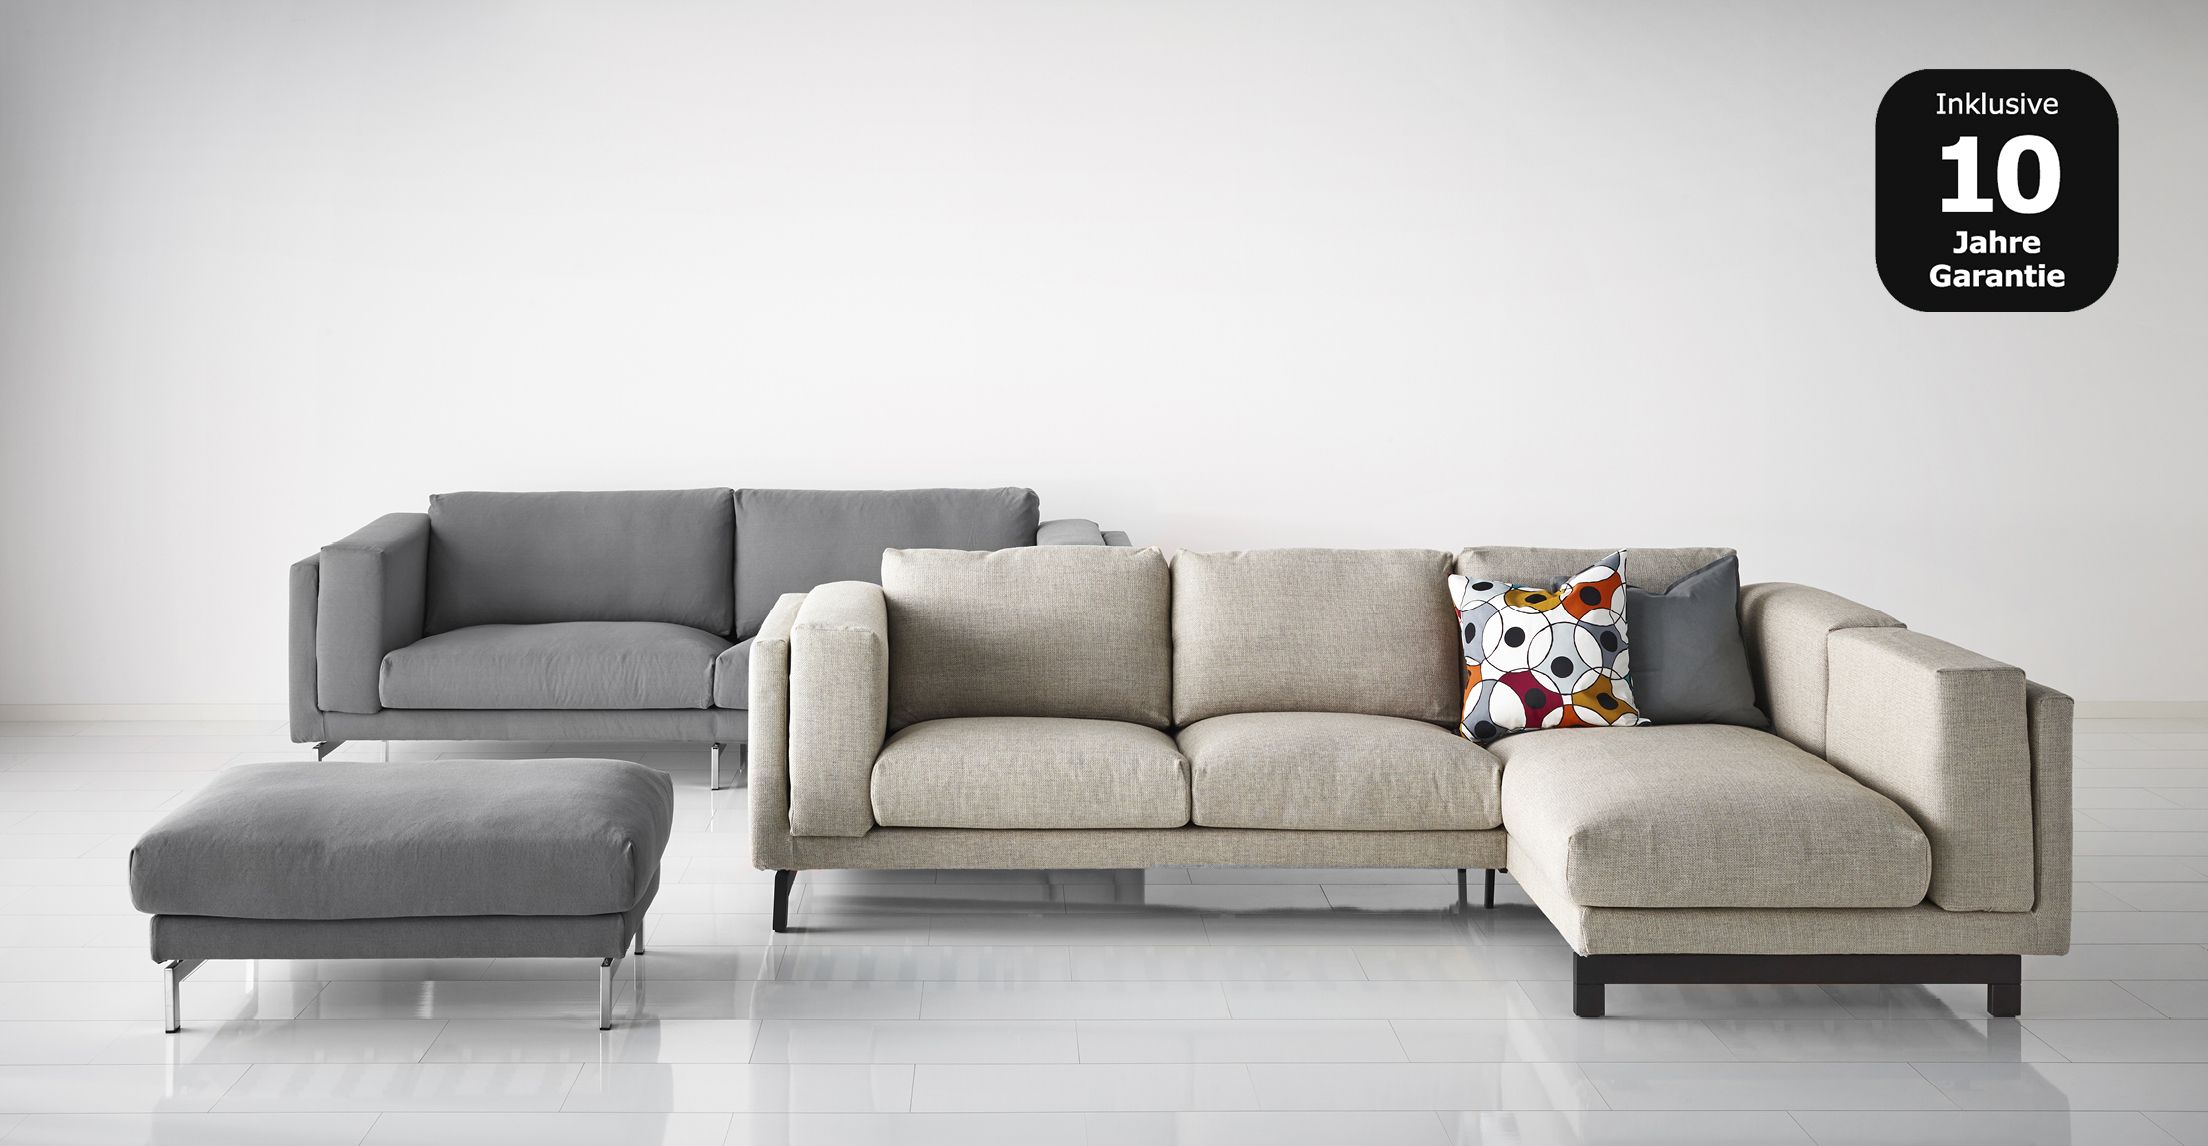 Ikea Nockeby Sofa Ikea Nockeby Sofa | Home | Pinterest | Living Rooms, Room